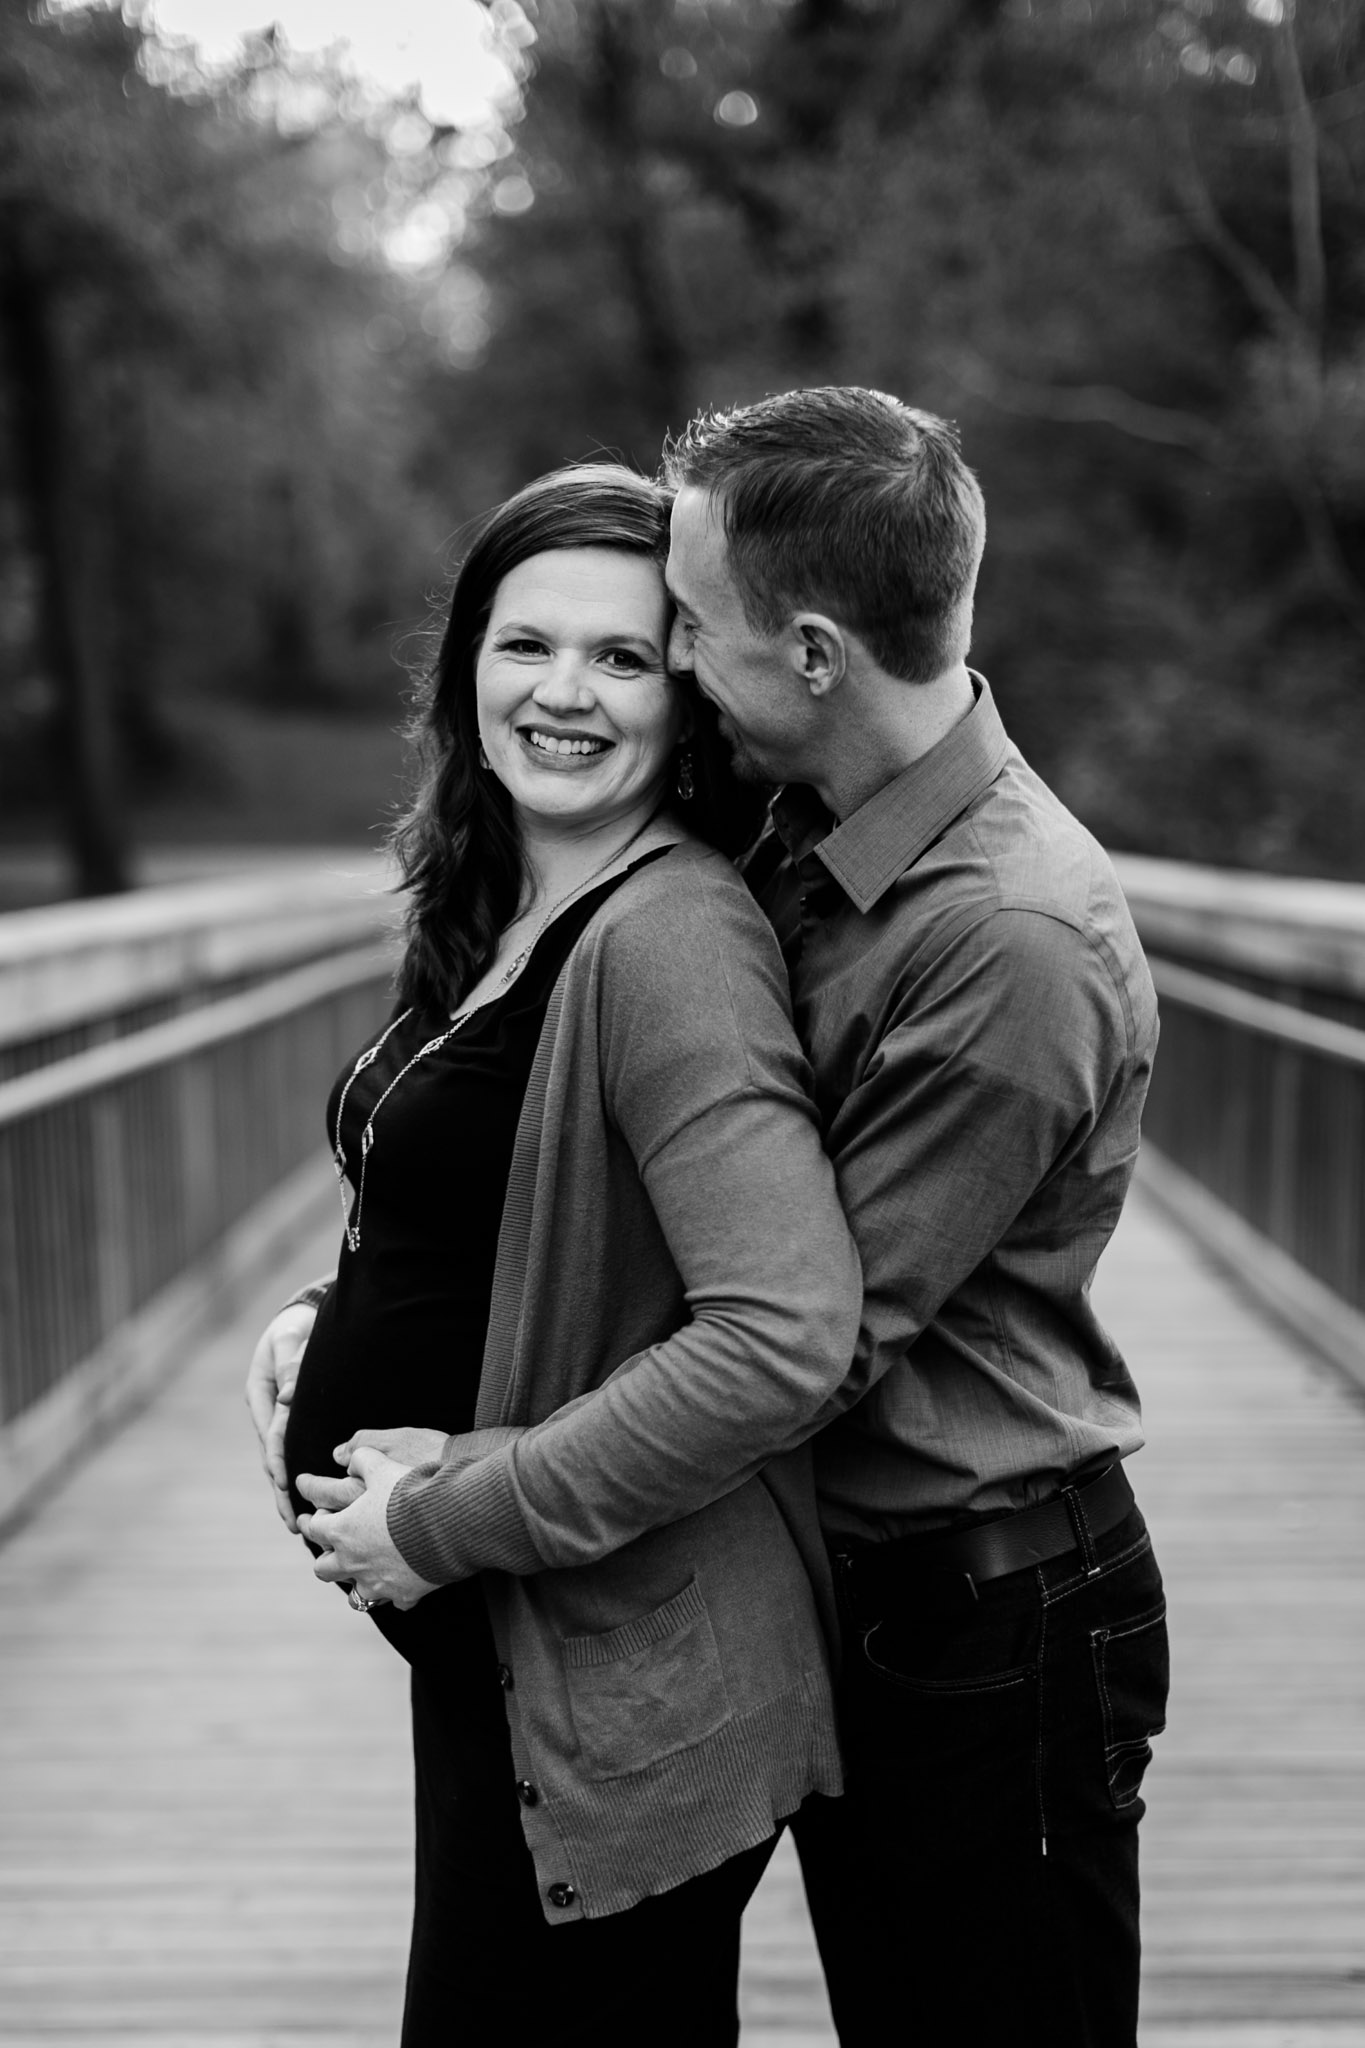 Black and white maternity portrait at Hillsborough Riverwalk | Hillsborough Maternity Photographer | By G. Lin Photography